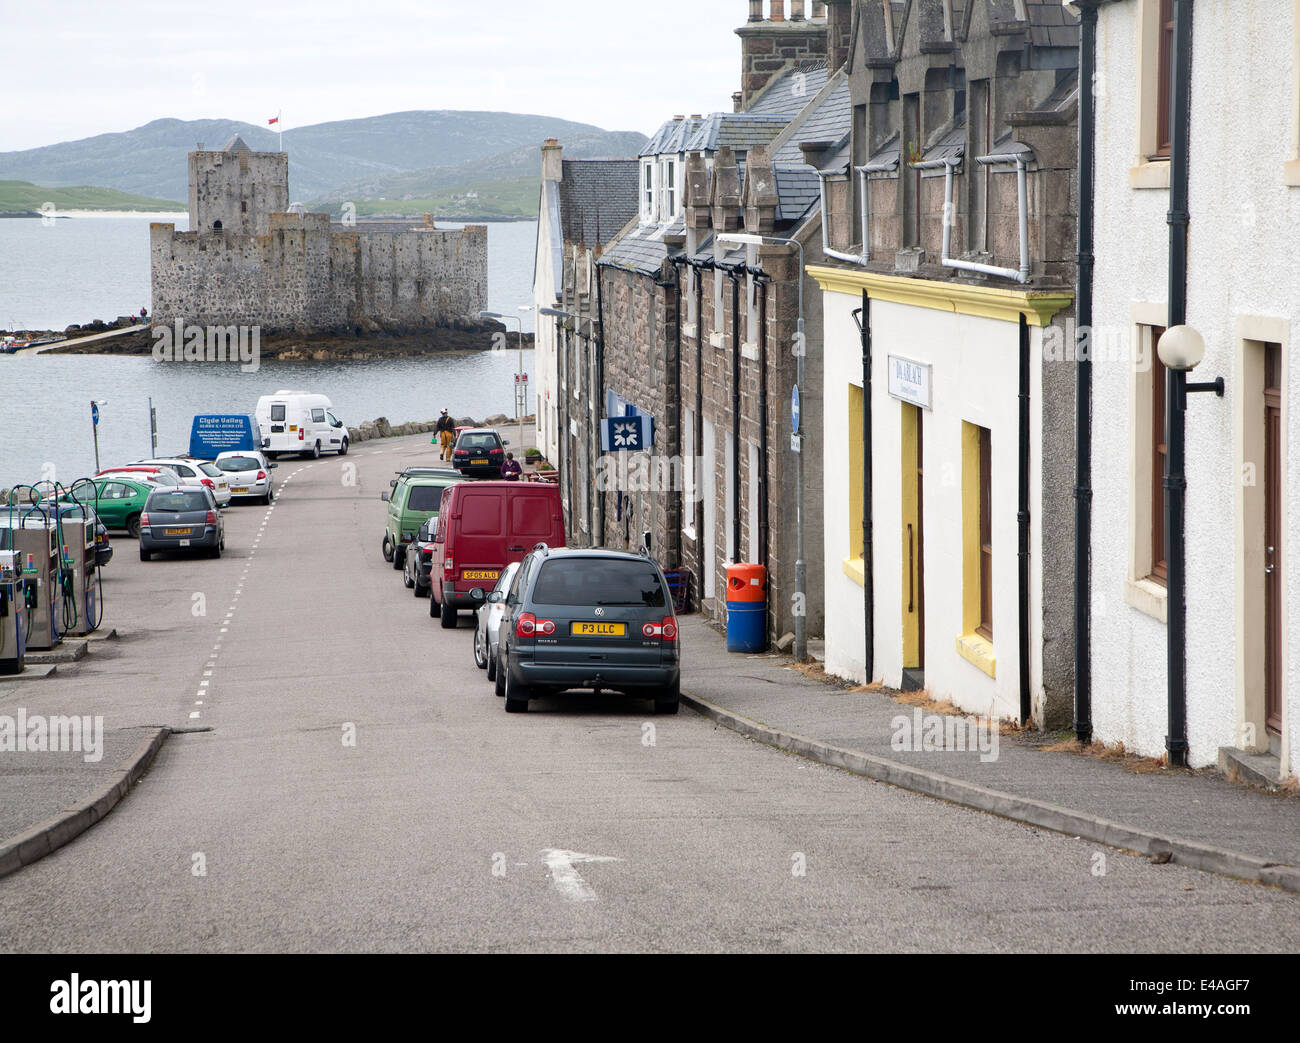 Street shops and Kisimul castle Isle of Barra, Outer Hebrides, Scotland - Stock Image